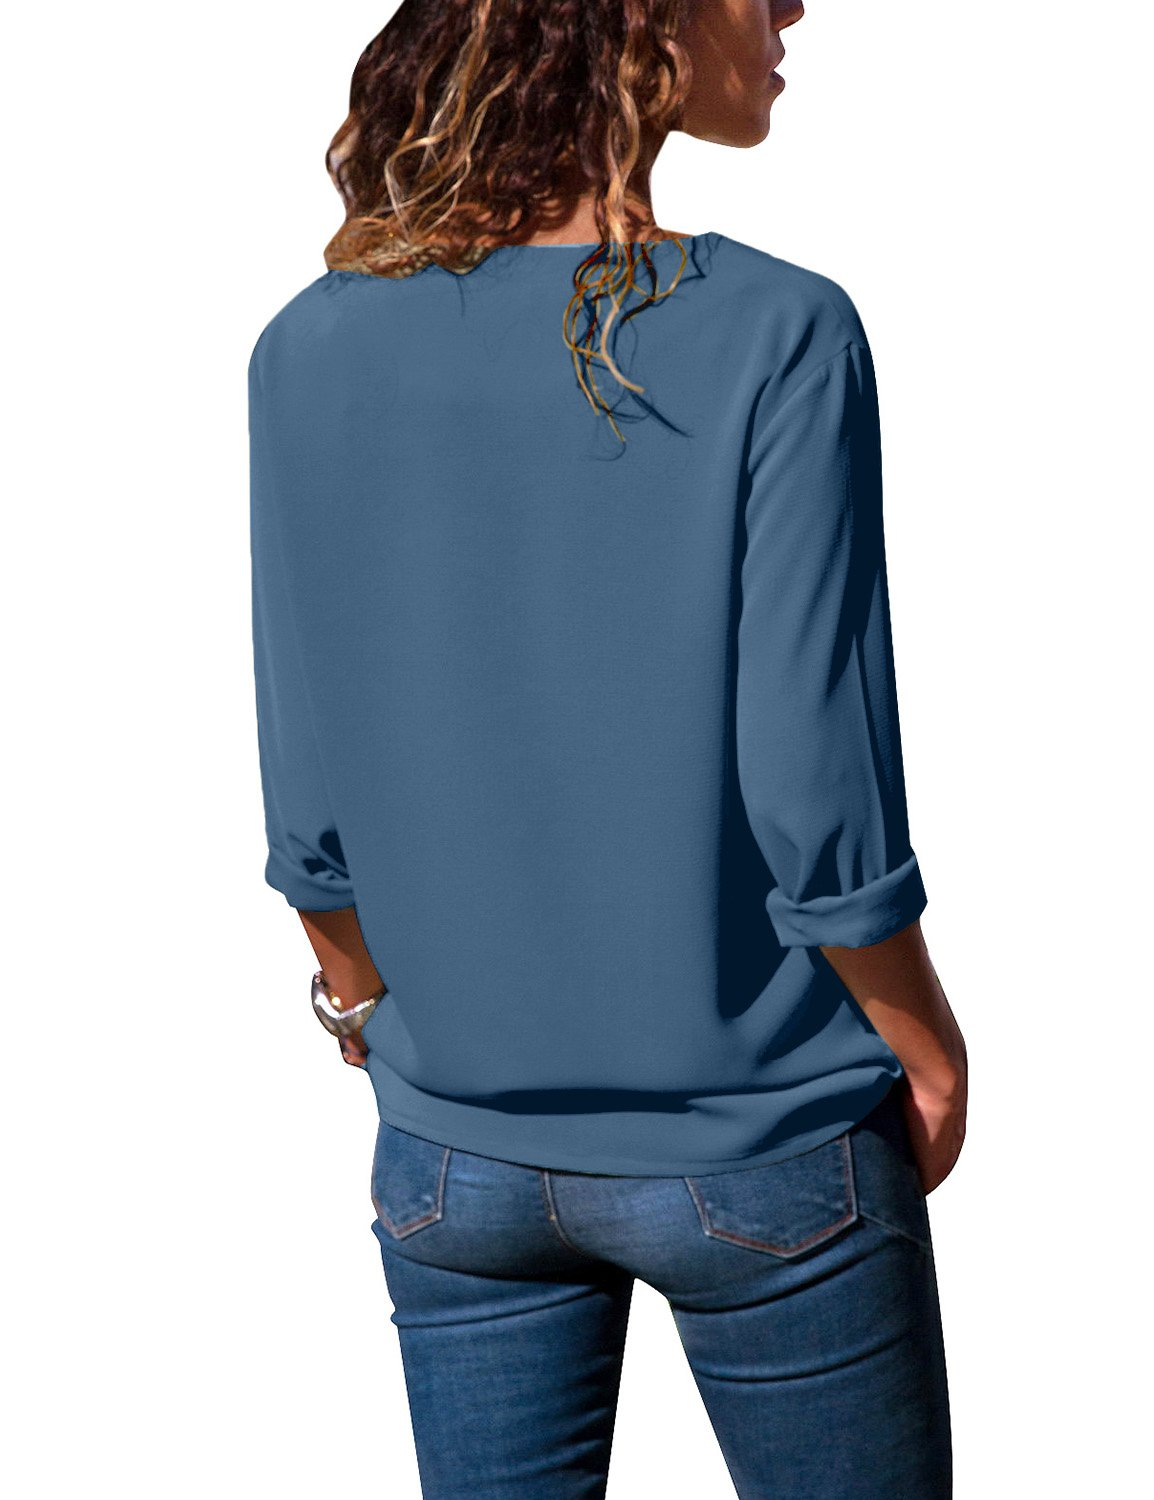 luvamia Women's Blue Side Buttons Shirt Casual Long Sleeve Chiffon Tops Solid Blouse Size M(US 8-10) by luvamia (Image #2)